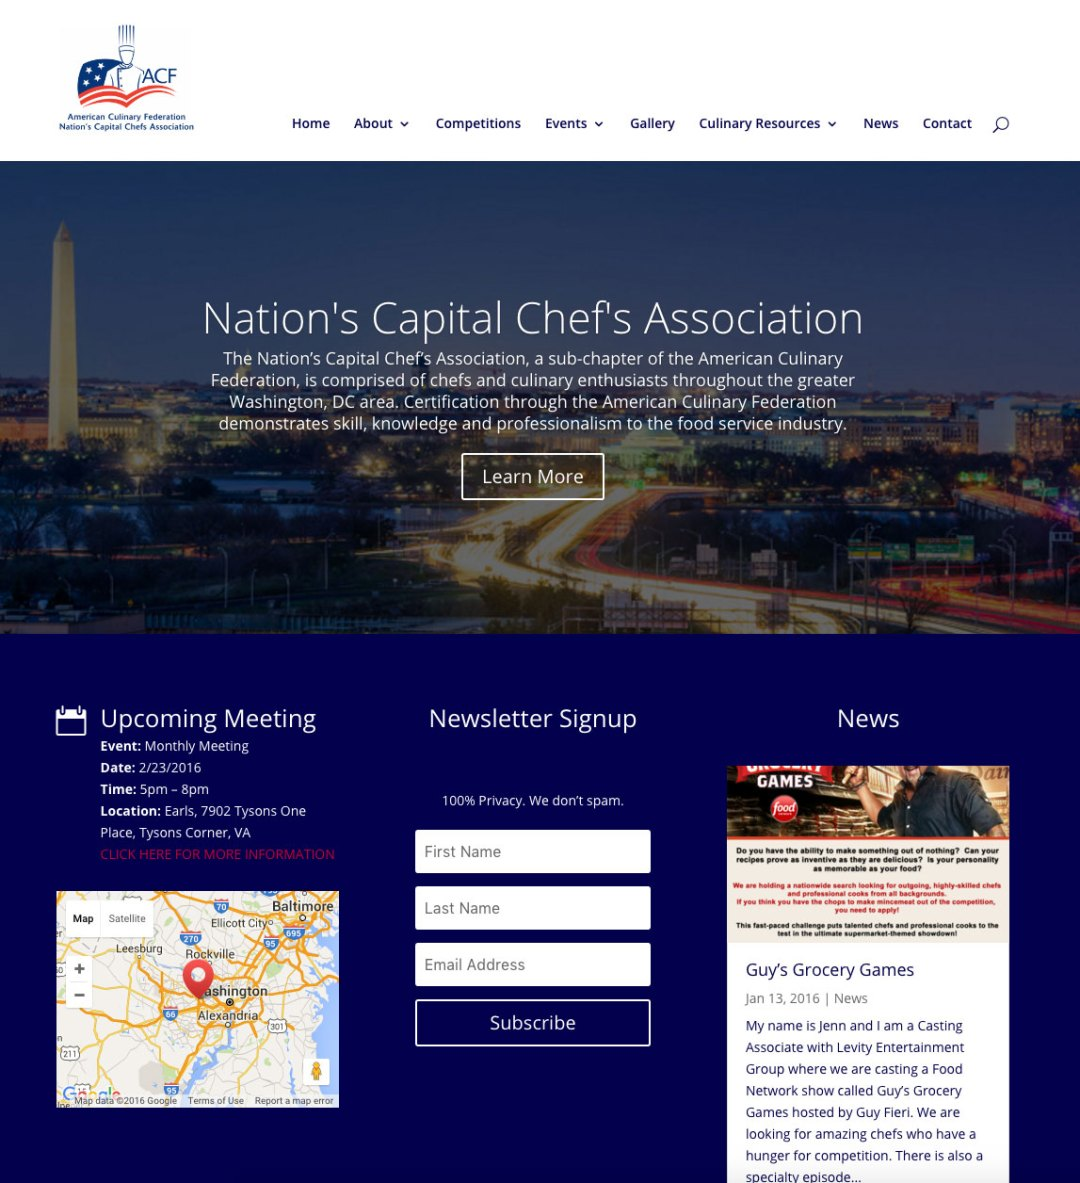 ACF Nation's Capital Chef's Association